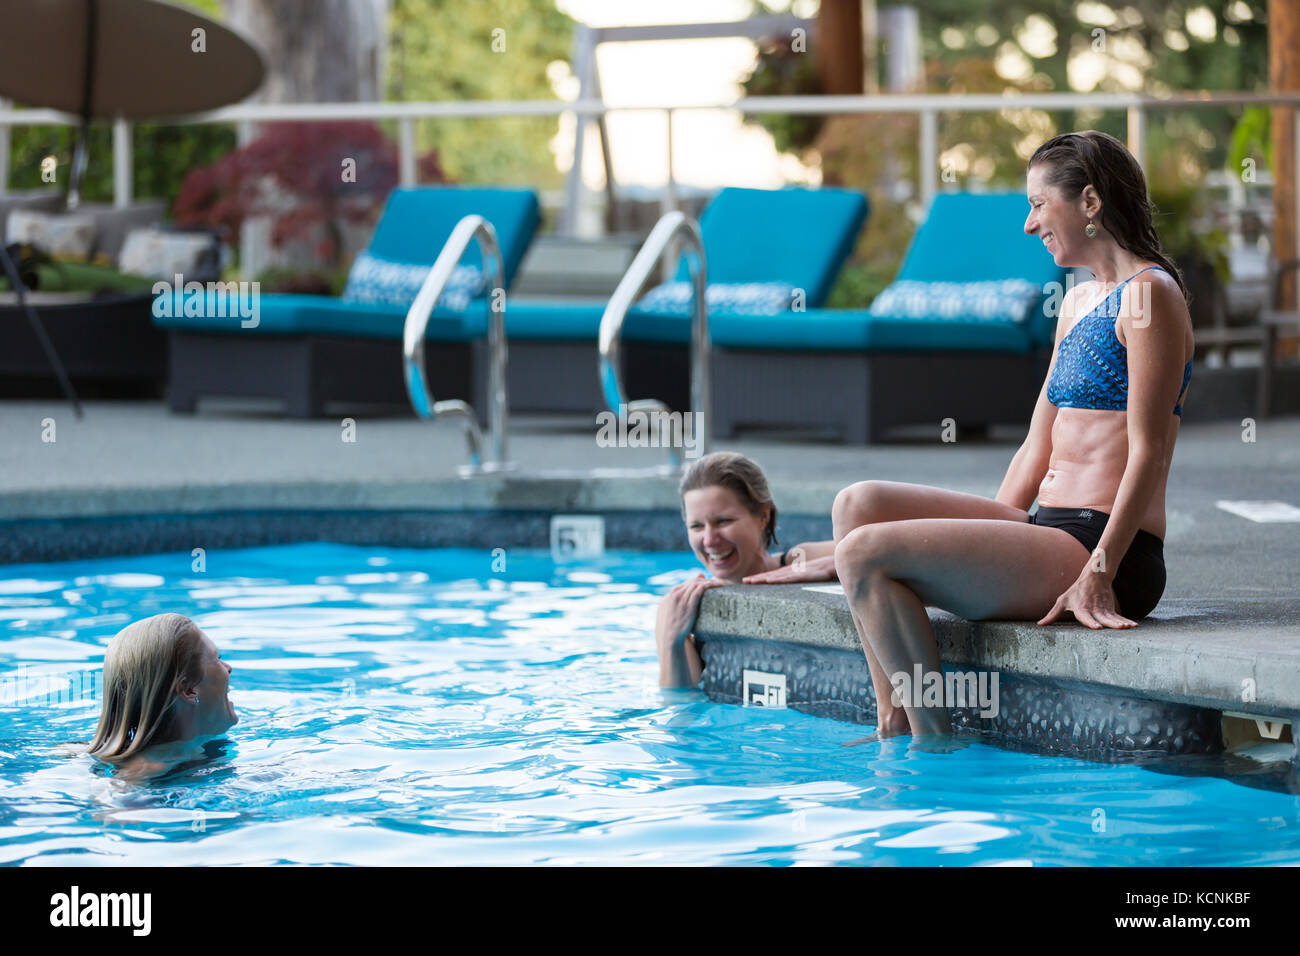 Spa Friends Stock Photos Spa Friends Stock Images Alamy